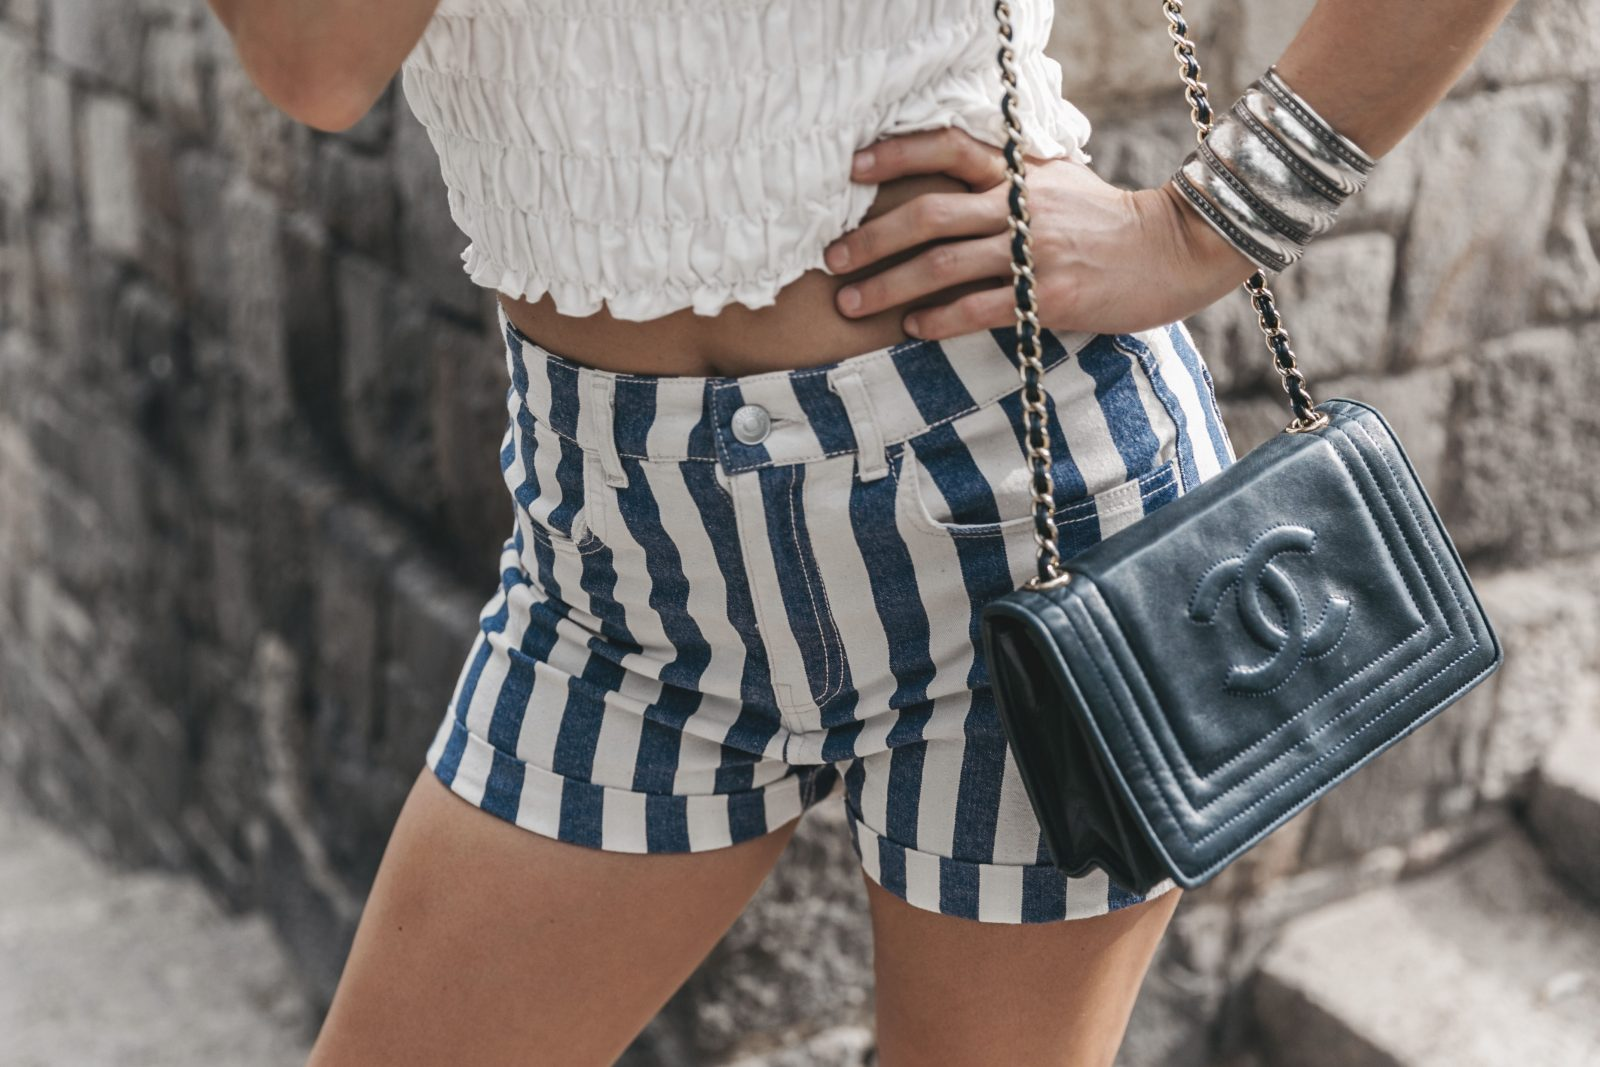 Primavera_Sound-HM-Stripped_Shorts-Canotier-Hat-Espadrilles-Outfit-Summer-Collage_Vintage-39